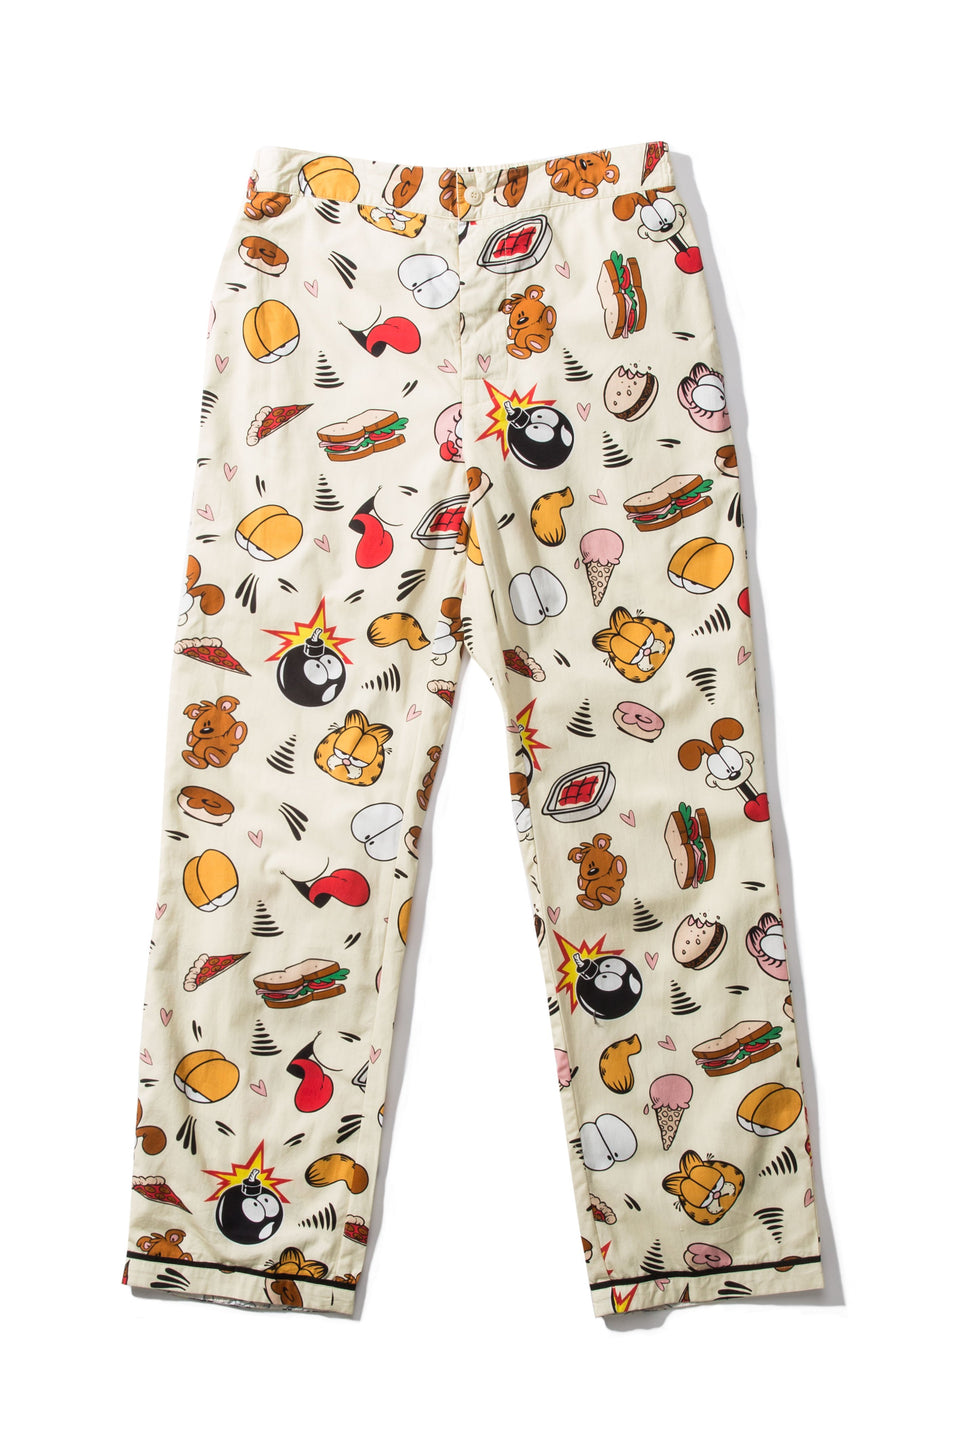 Garfield Pajama Set